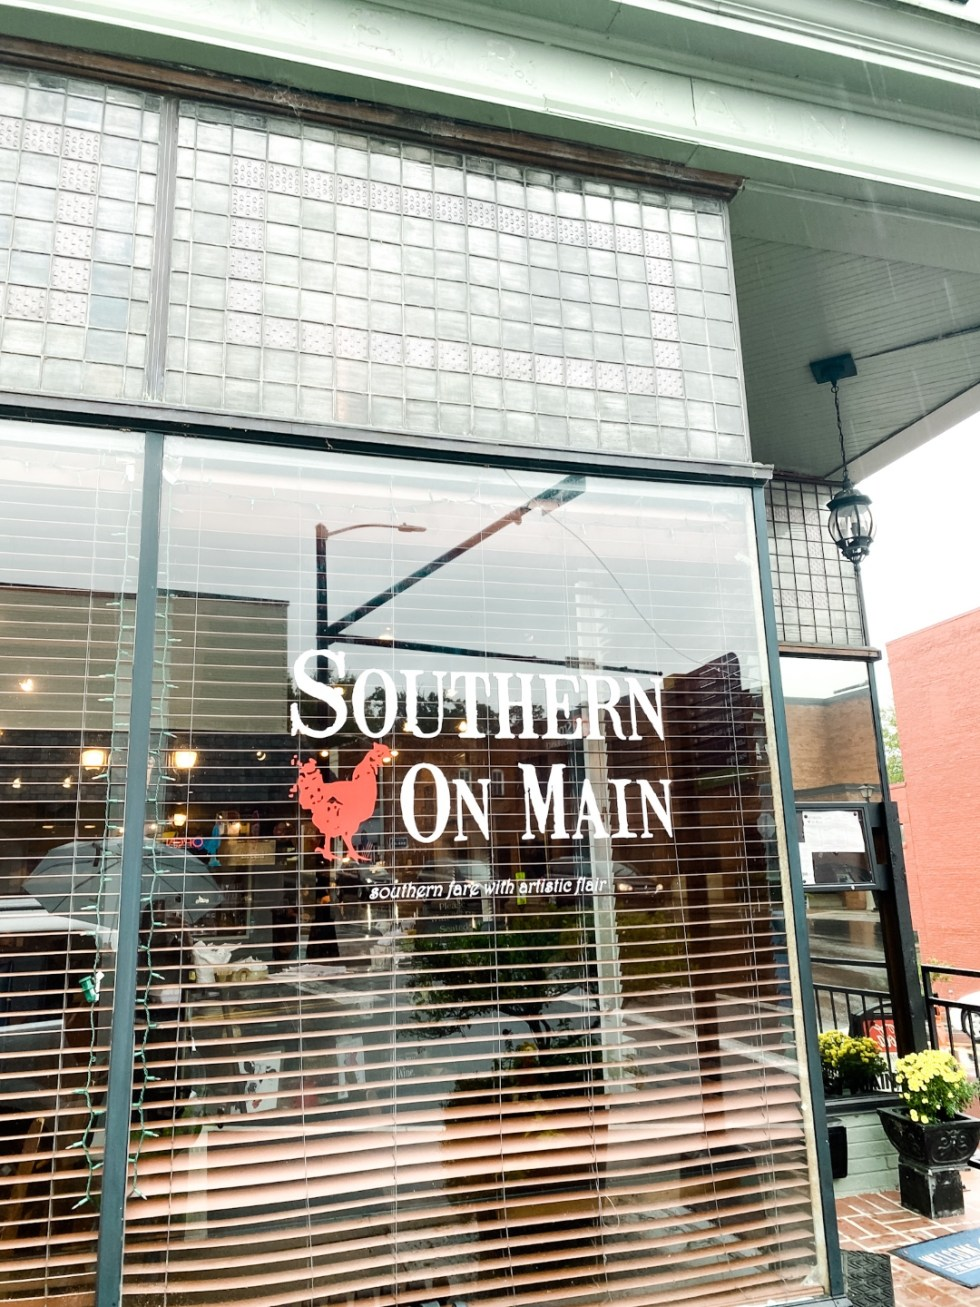 Western NC Wineries: 6 Wineries to Visit During your Next Girls' Weekend - I'm Fixin' To - @mbg0112 |Western NC Wineries by popular NC blog, I'm Fixin' To: image of Southern on Main.